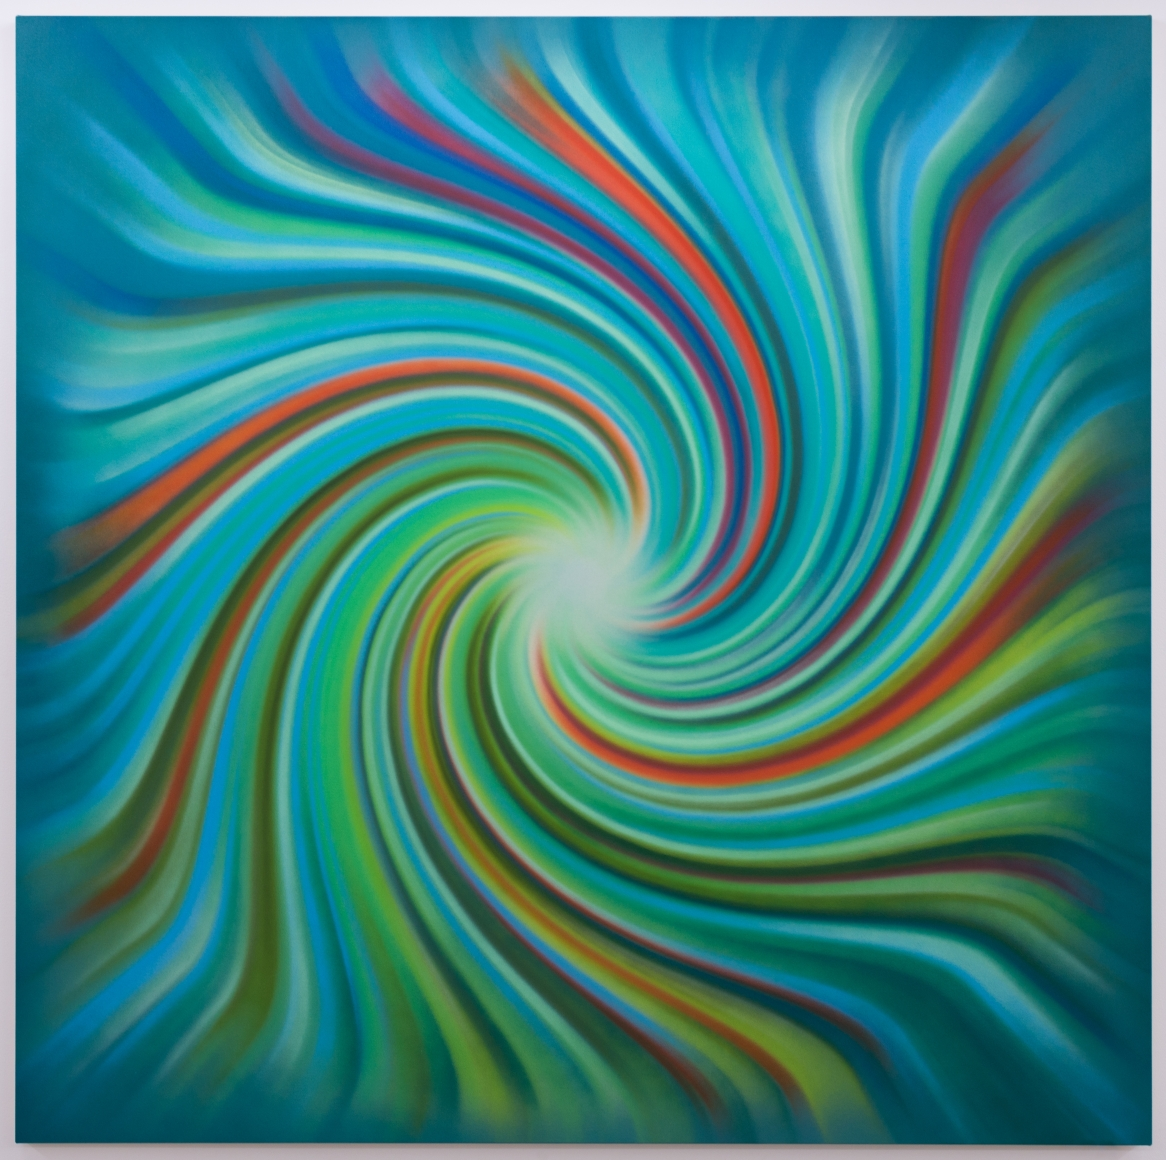 Experienced (Spiral), 2014, Synthetic polymer on canvas